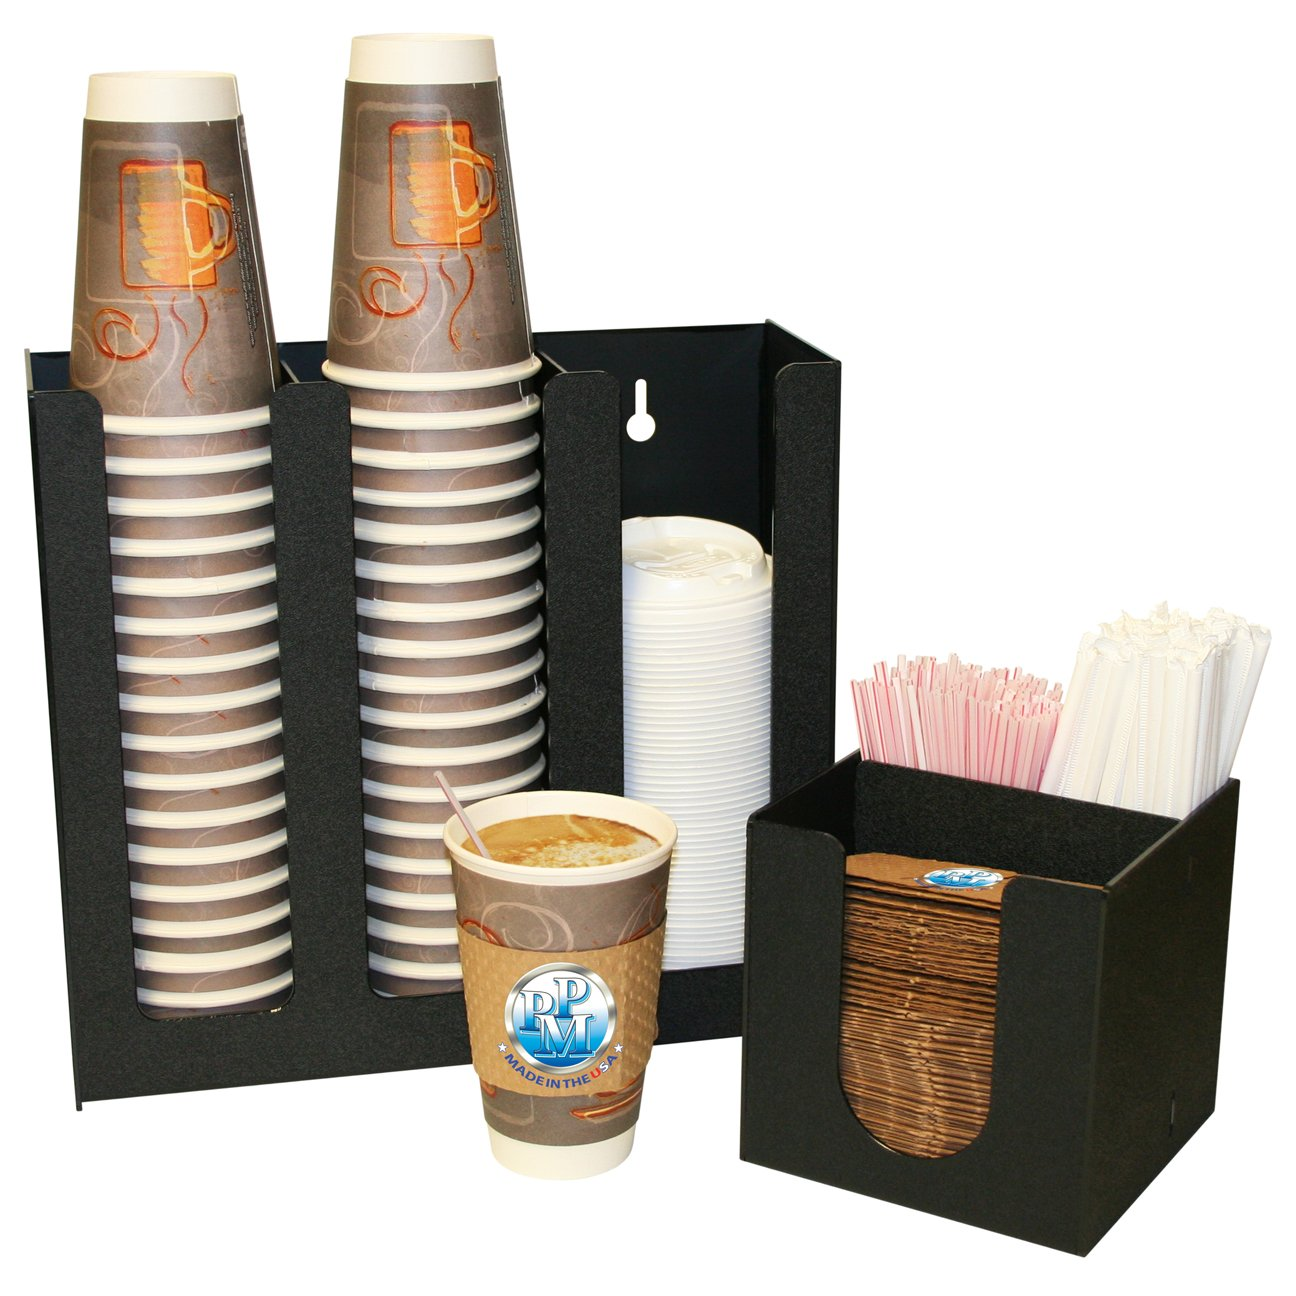 2 Piece Combo, a 3 Column Holder for Coffee Cups, Lids, And Holder for Java Jackets and Stirrers. Perfect for Coffee Reception Areas. Proudly Made by PPM in the USA!